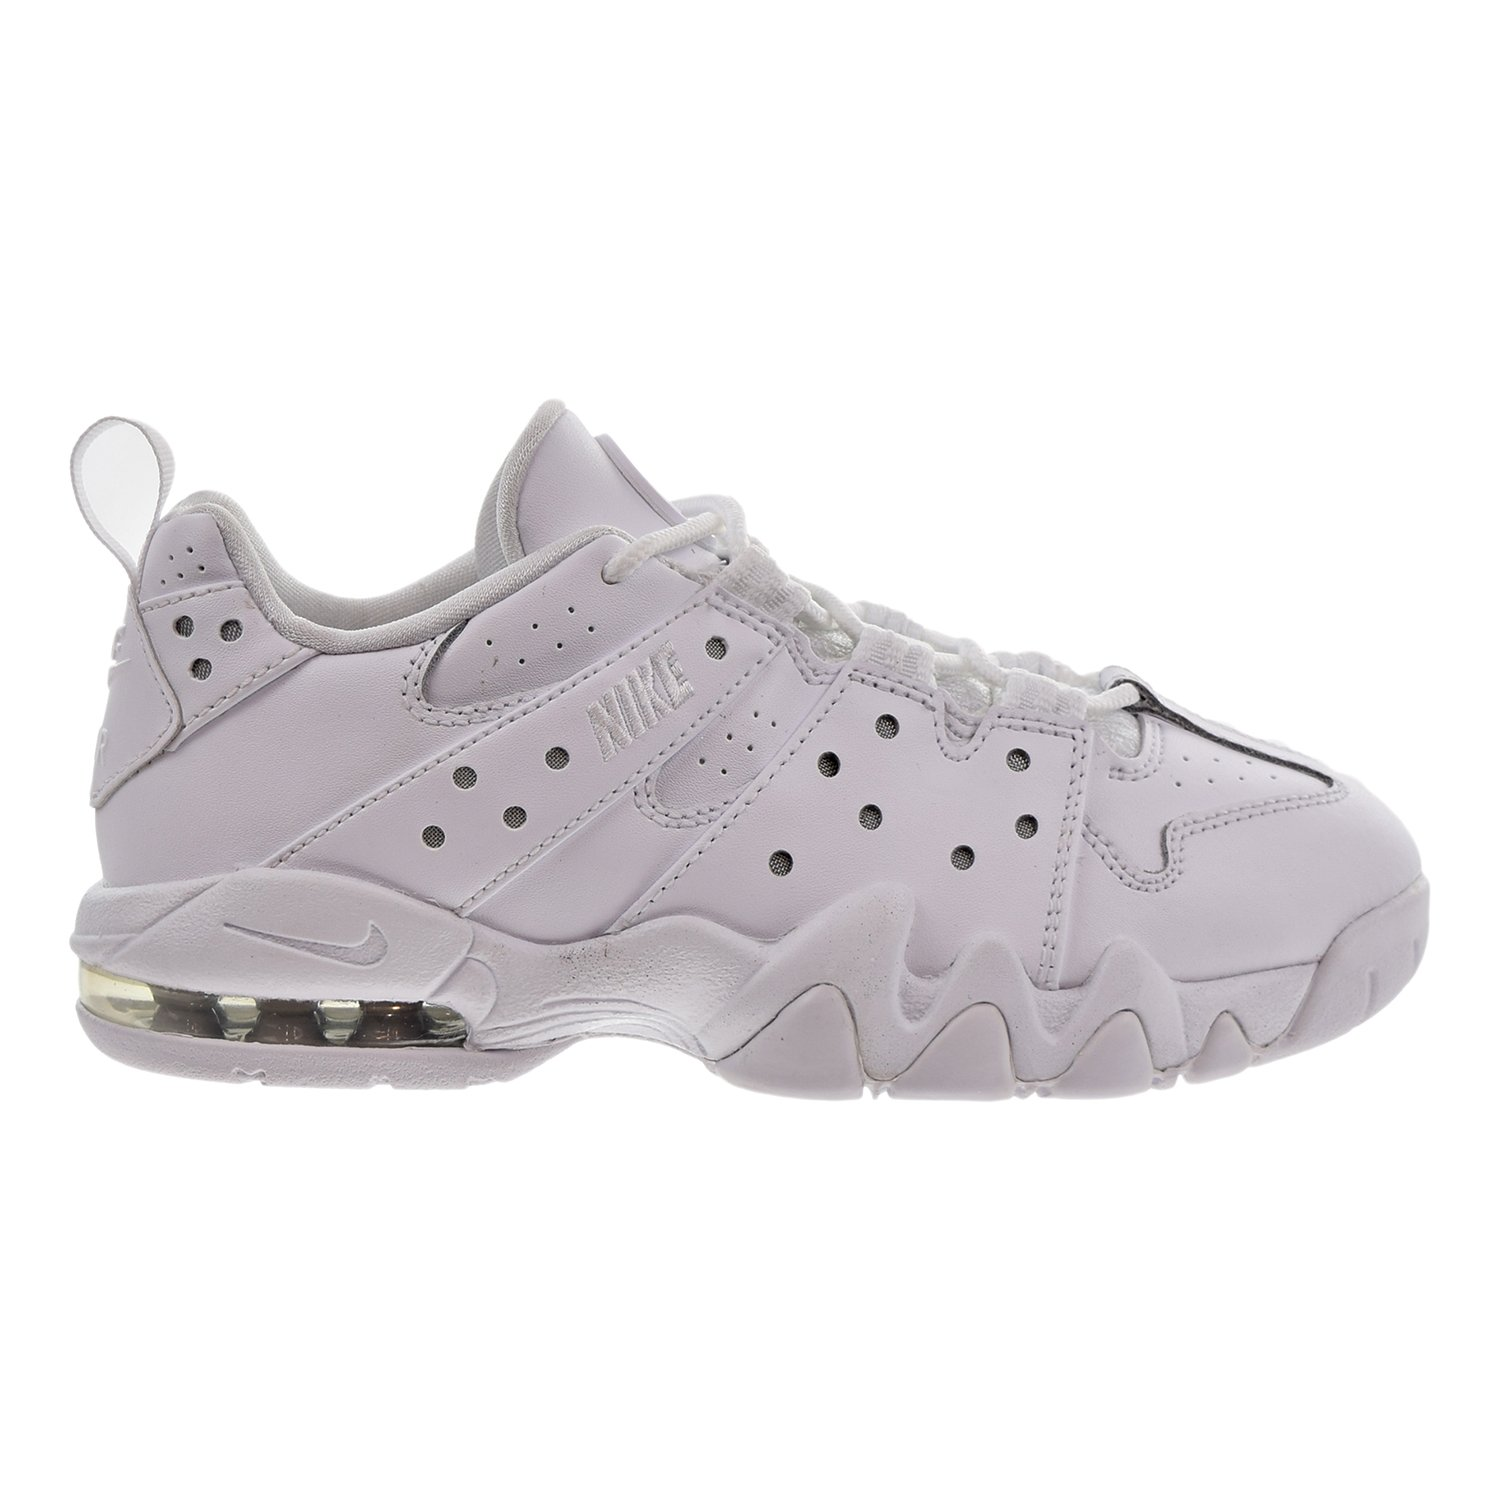 newest 7701a bacef Amazon.com   Nike Air Max CB  94 Low Little Kids (PS) Shoes White White  918337-100 (12 M US)   Basketball